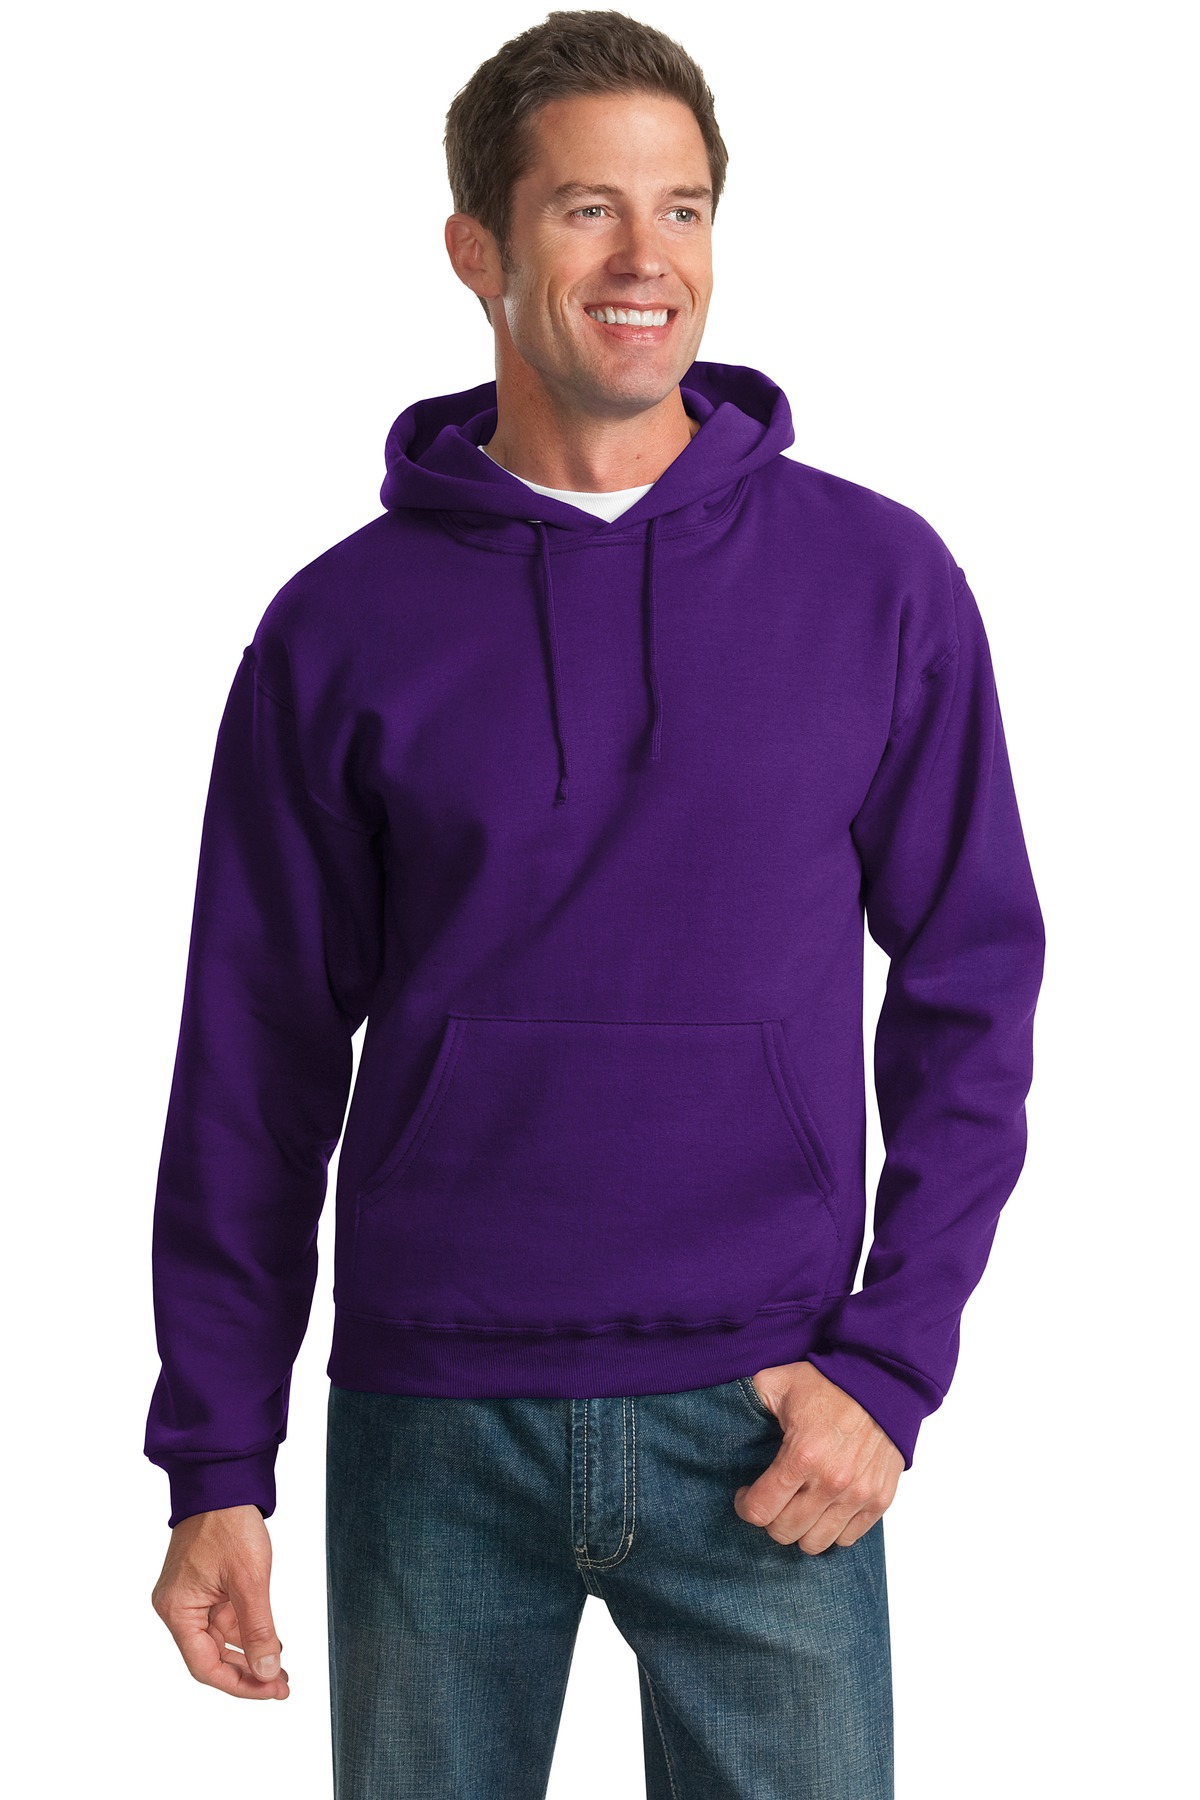 JERZEES ®  - NuBlend ®  Pullover Hooded Sweatshirt.  996M - Deep Purple